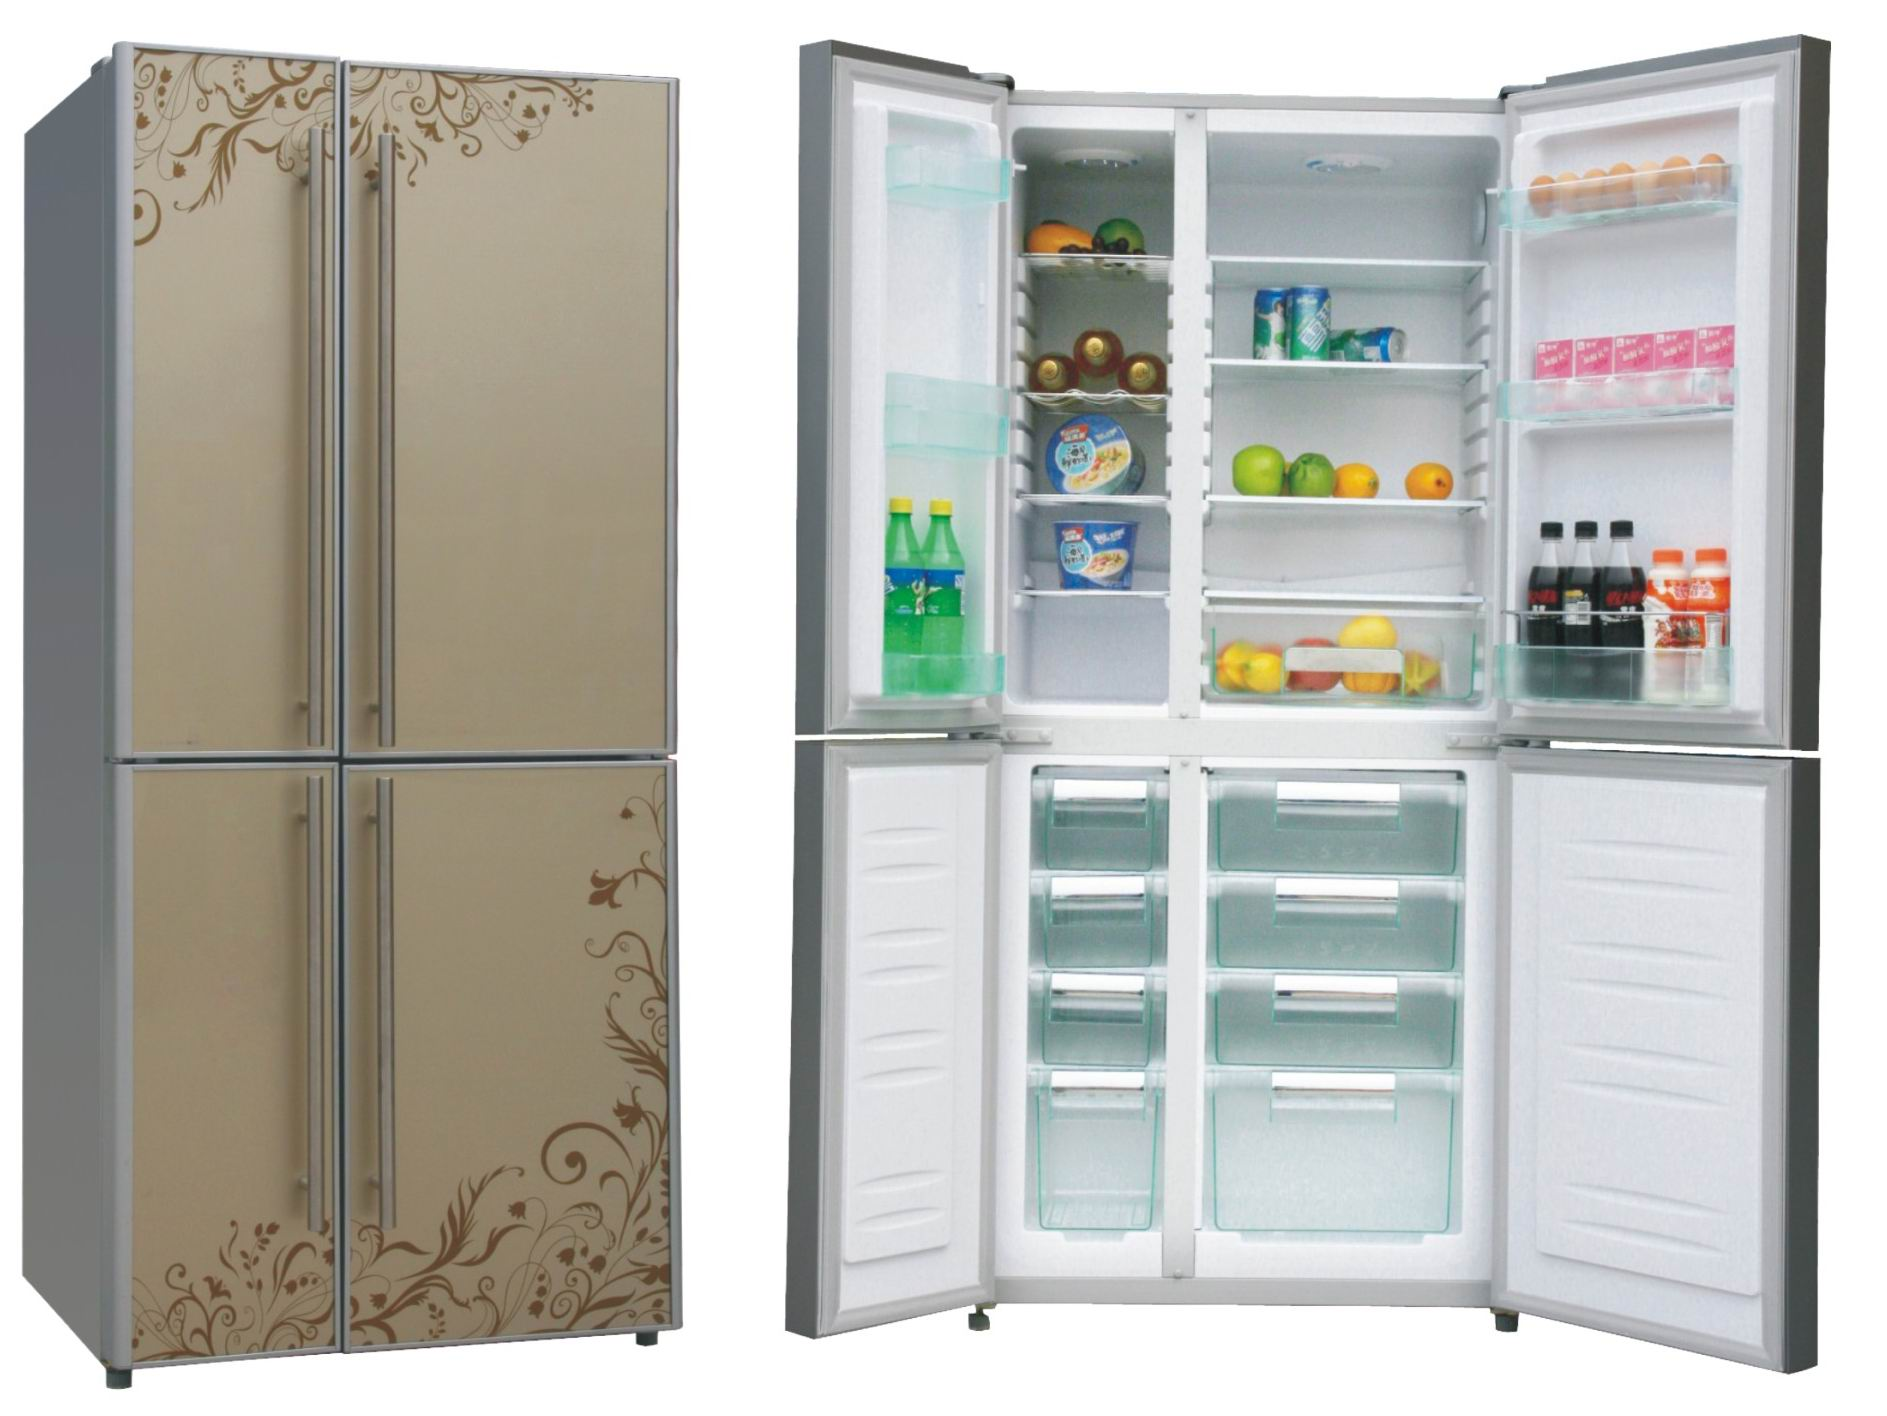 Image result for Side by Side refrigerator